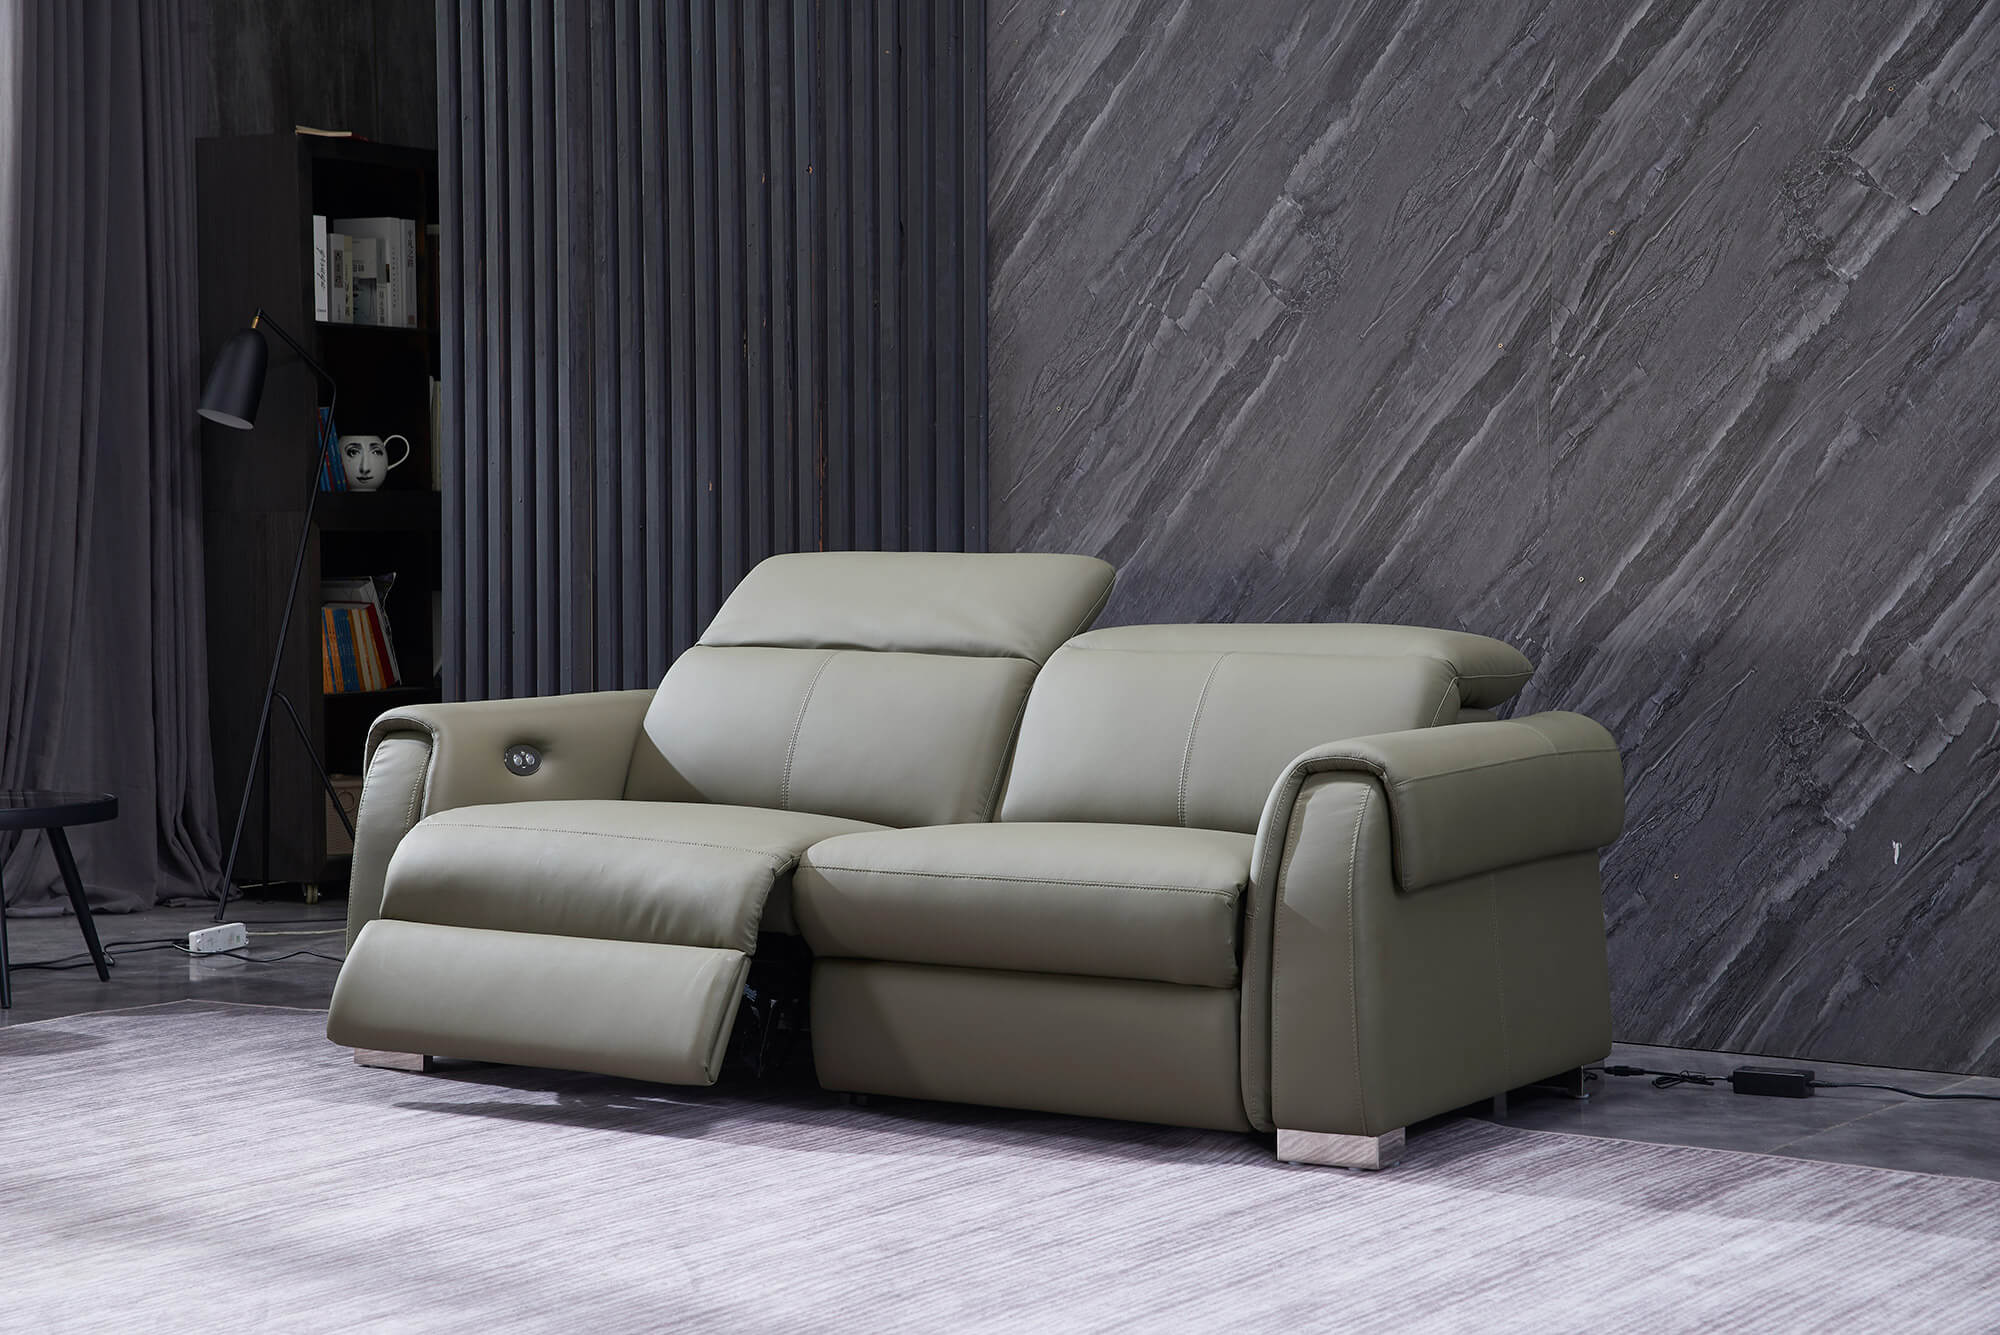 olive leather electric recliner sofa 2 seater reclined